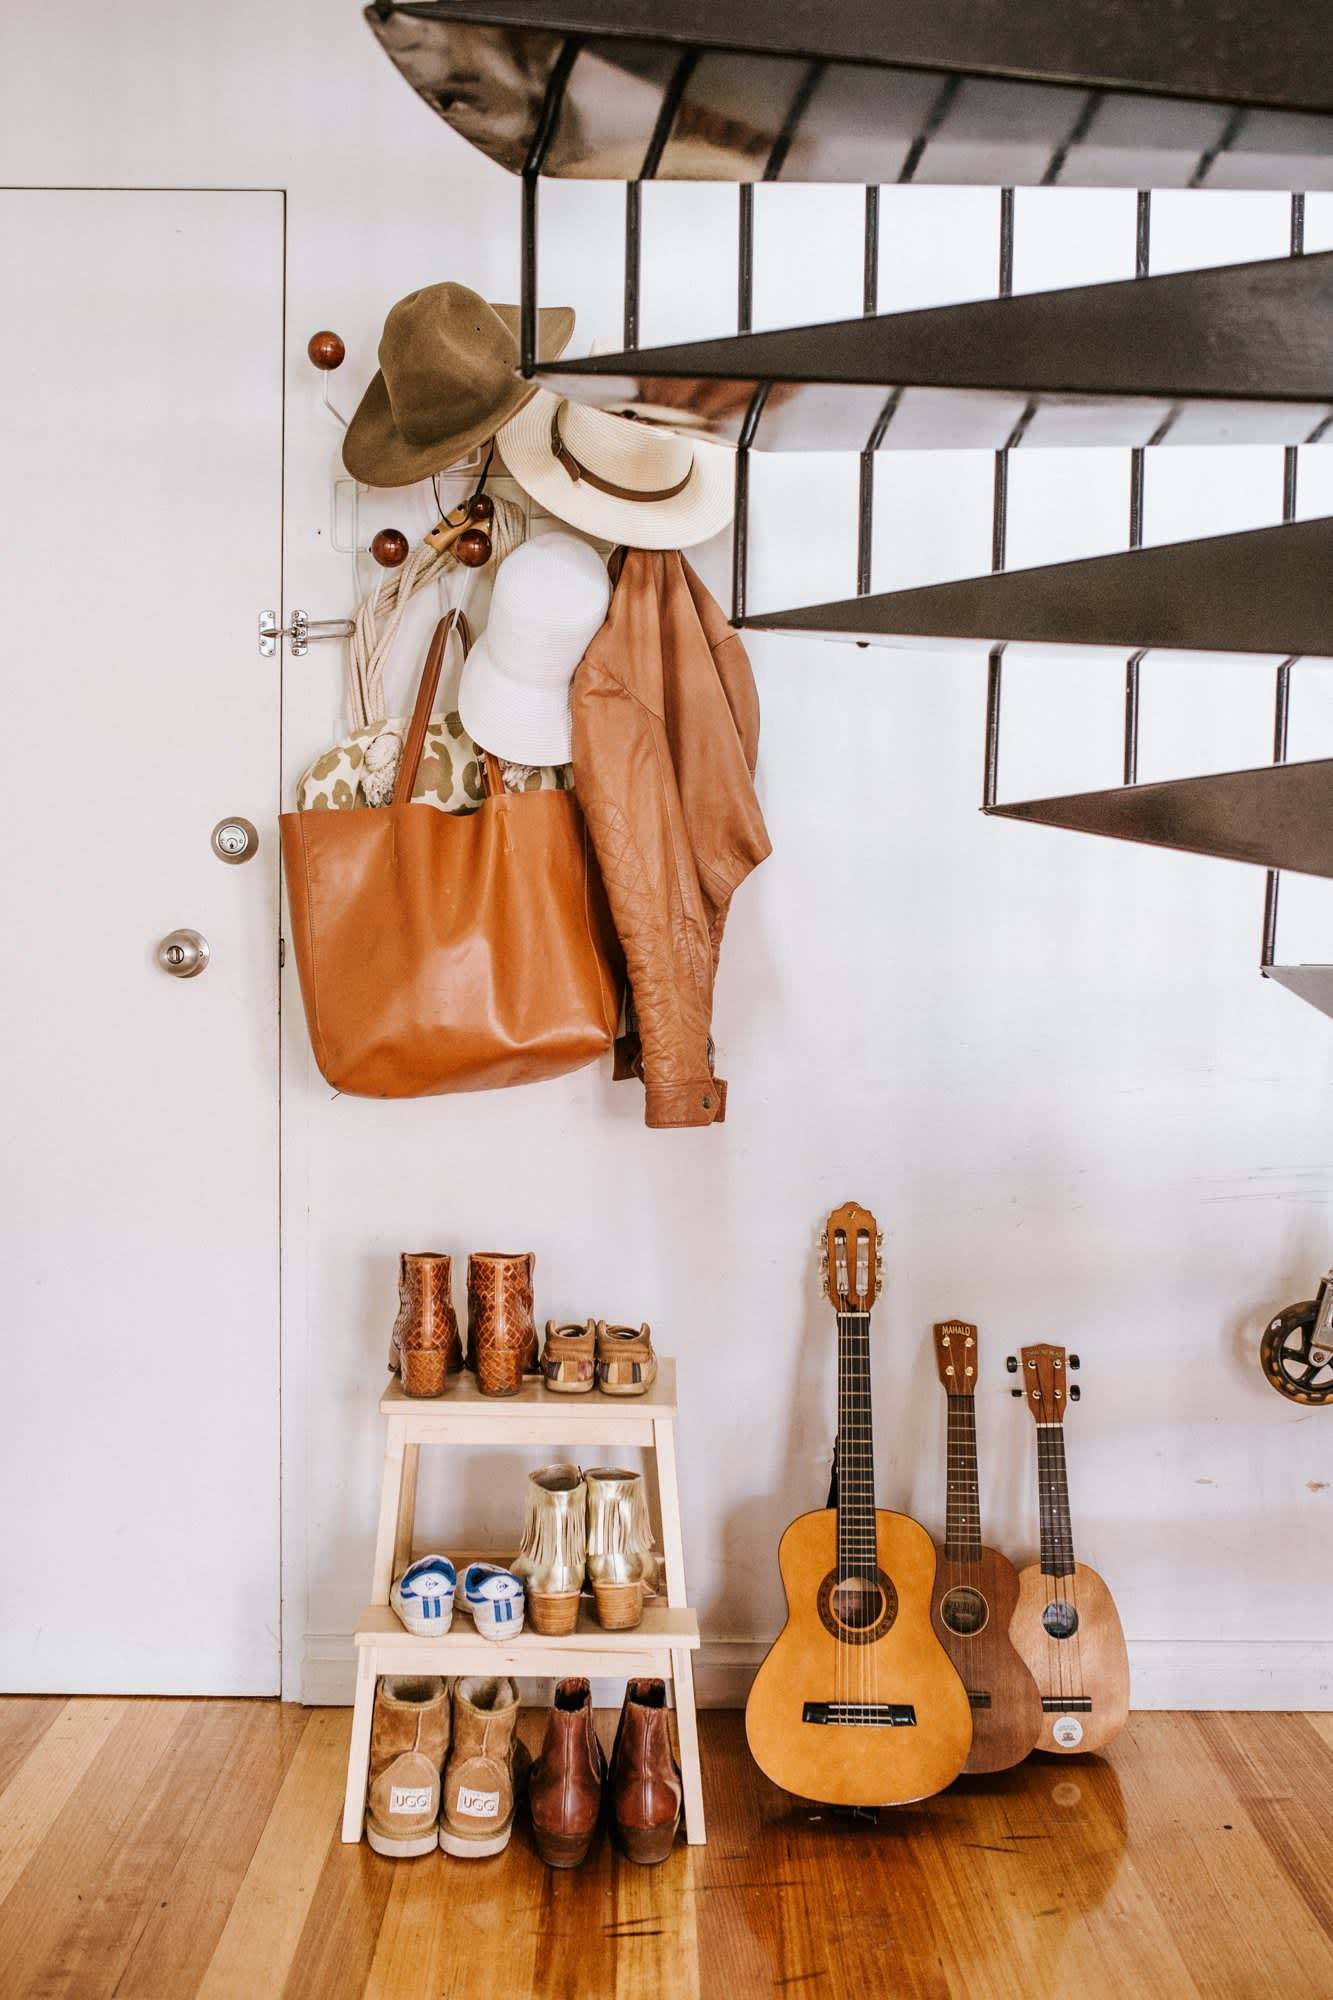 Shoes, purse, hat, and coatrack